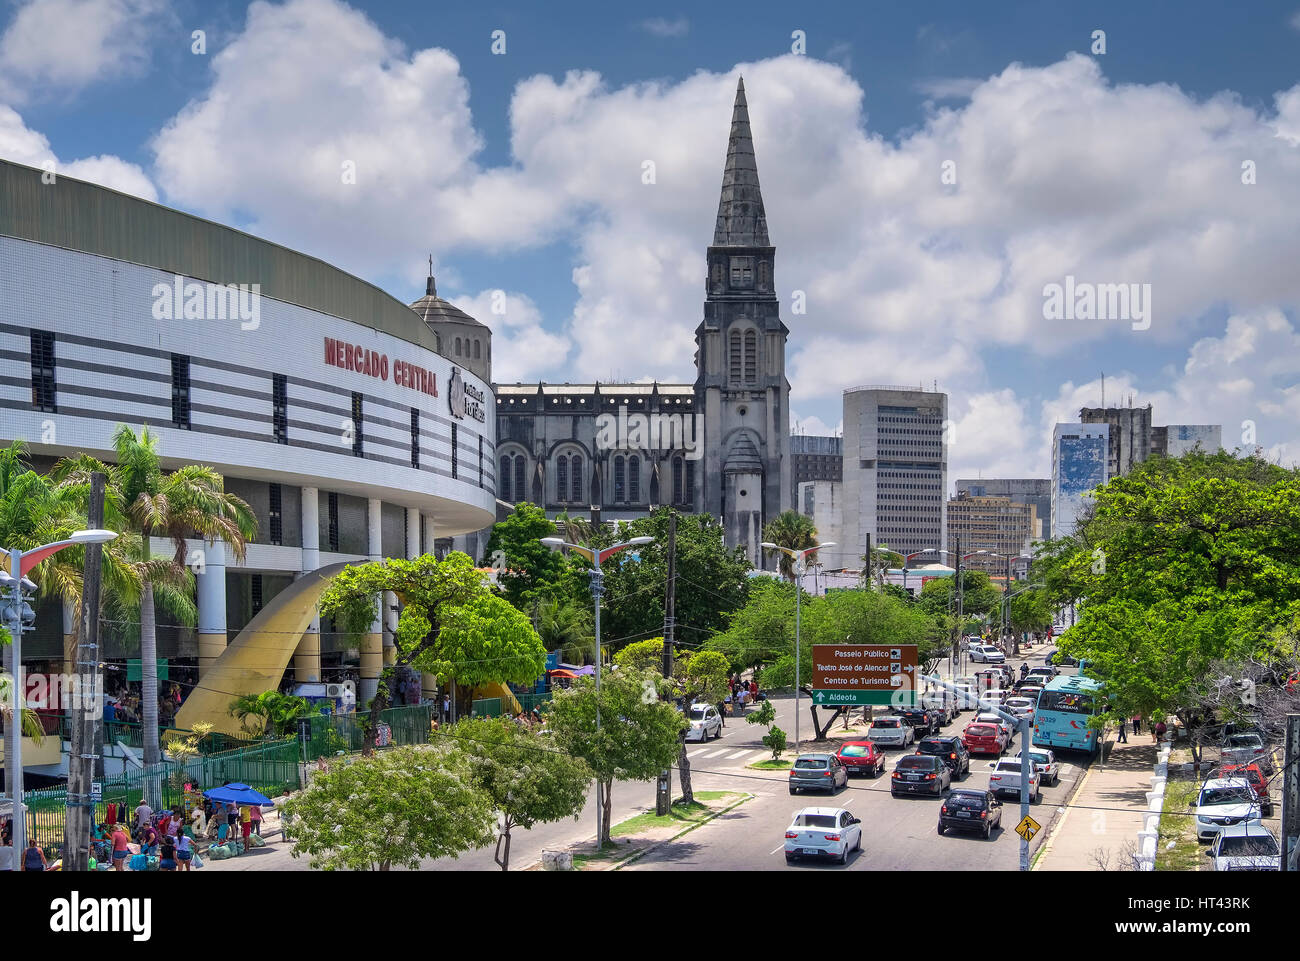 The Mercado Central or Central Market and St. Joseph's Cathedral, Fortaleza, State of Ceara, Brazil Stock Photo